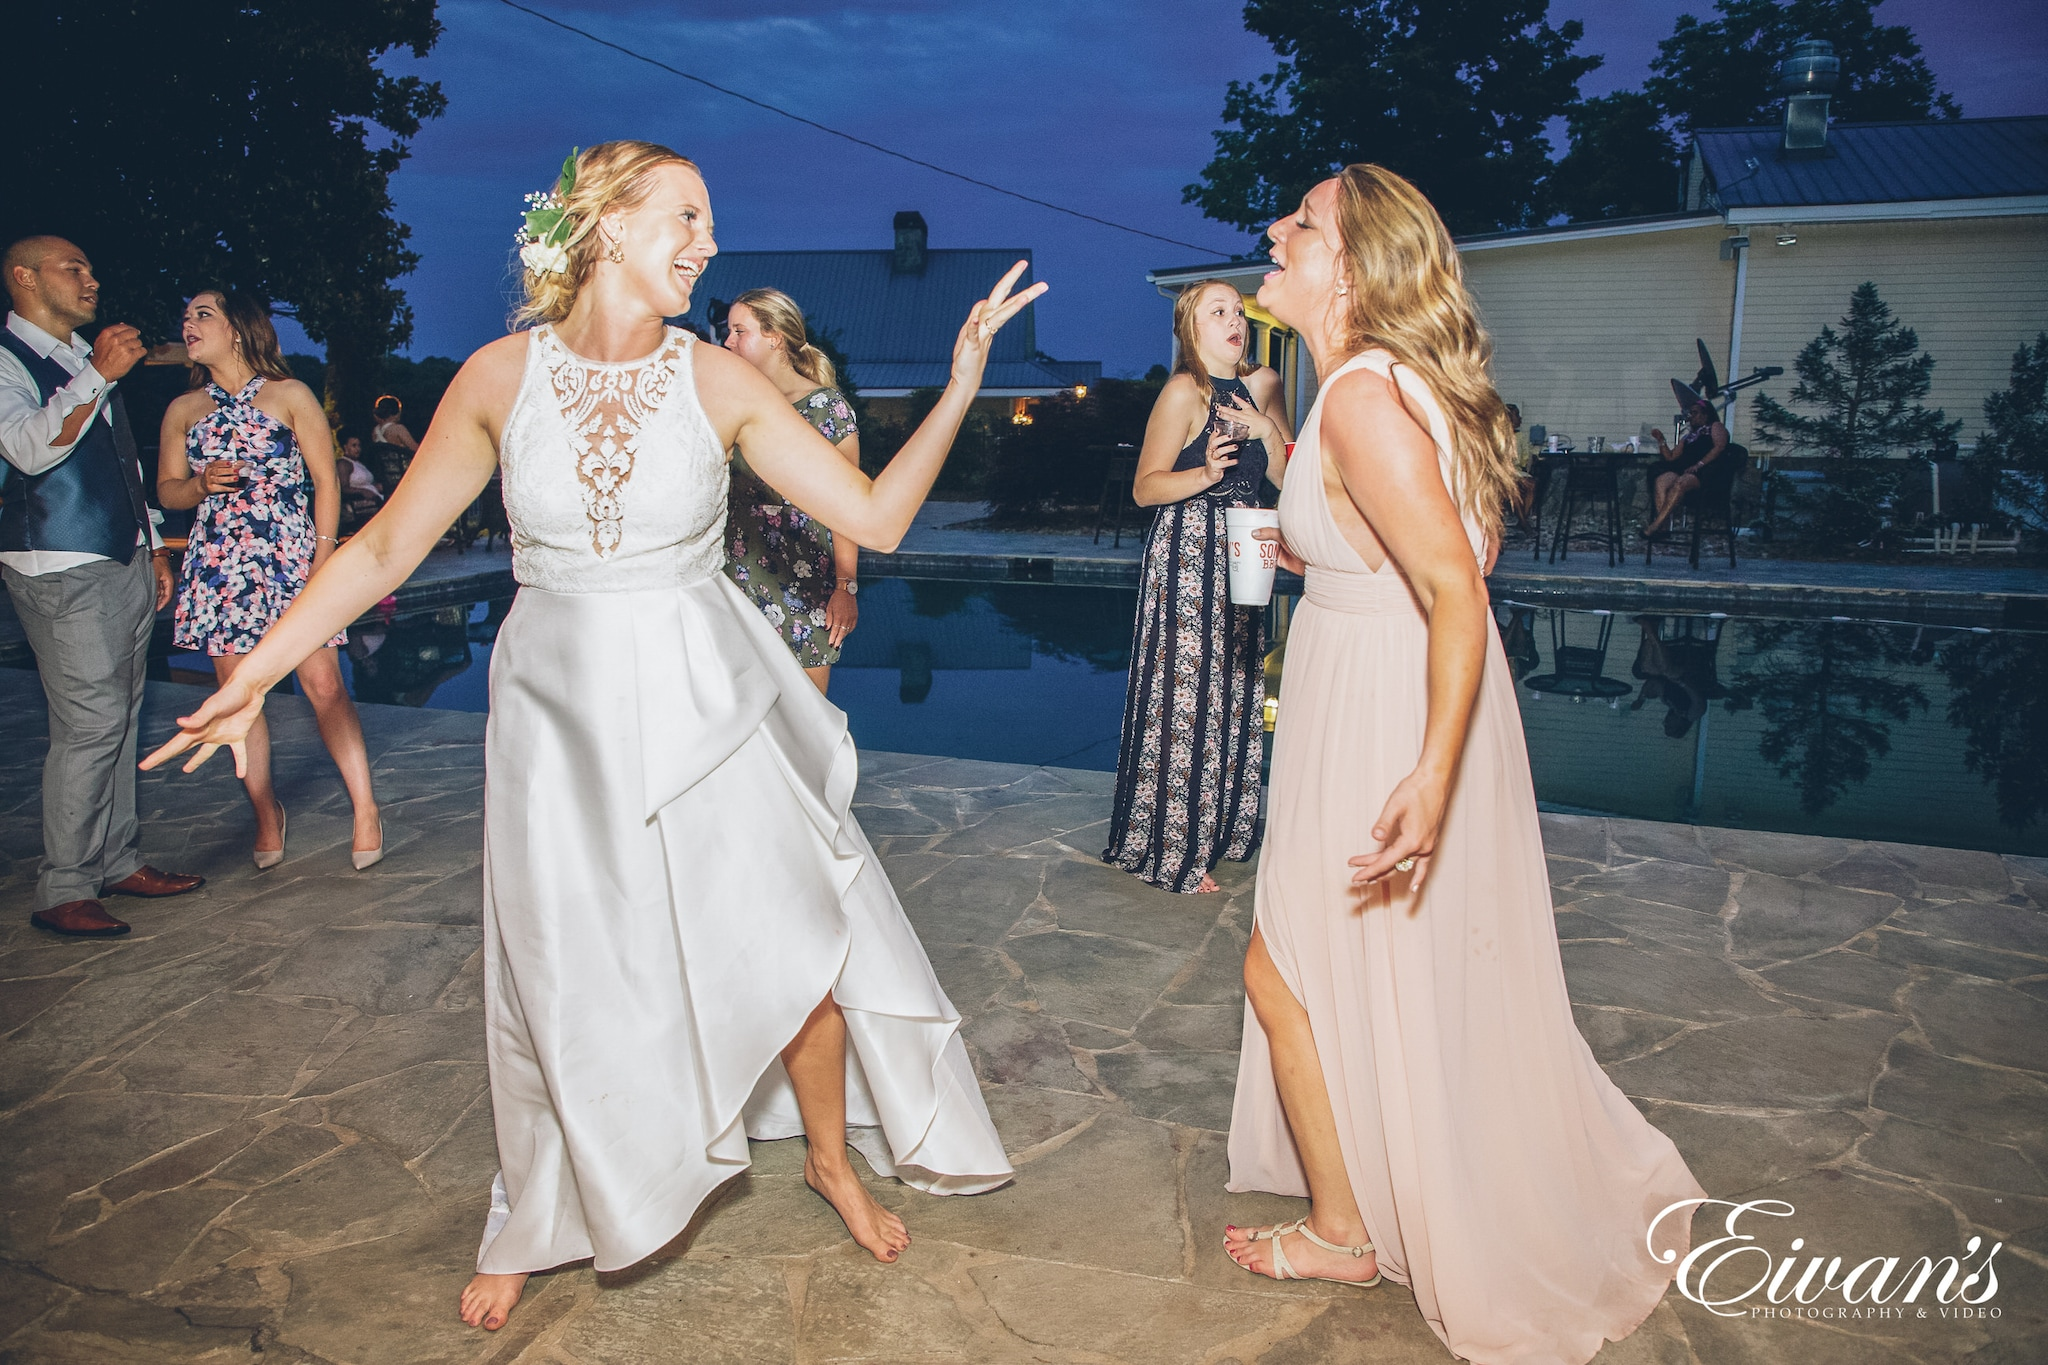 woman in a white dress and woman in a pink dress dancing